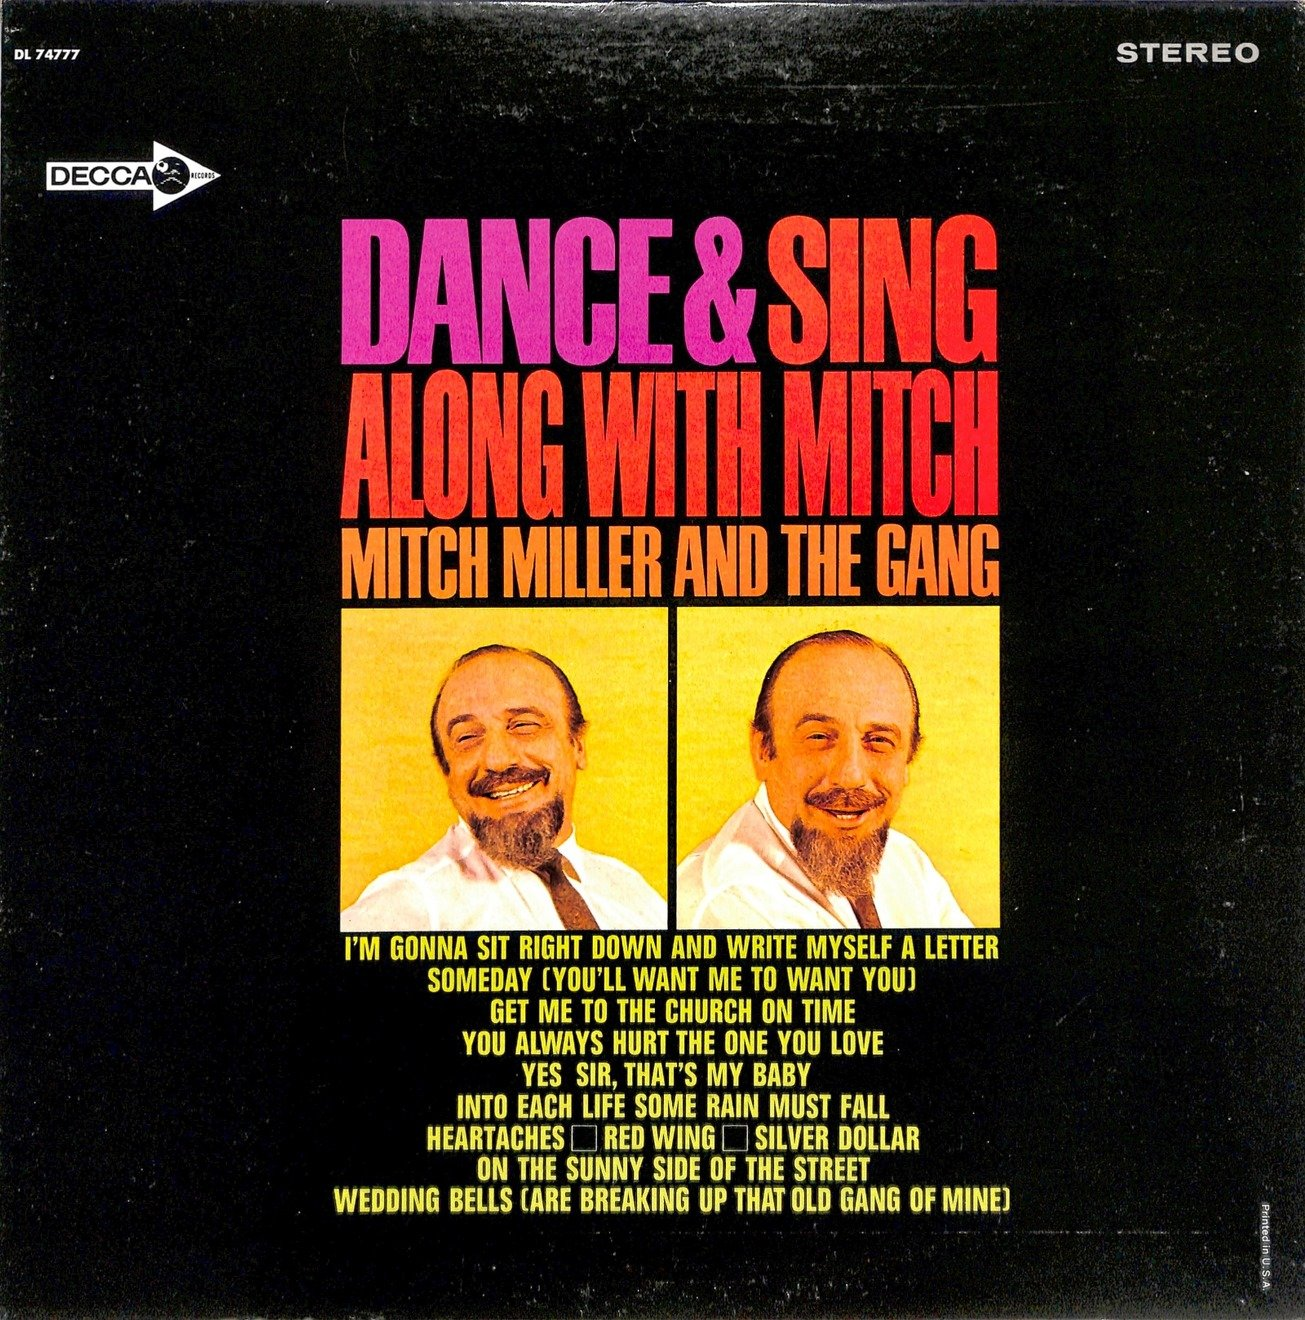 Mitch miller dance and sing along with mitch  28dl 74777 29